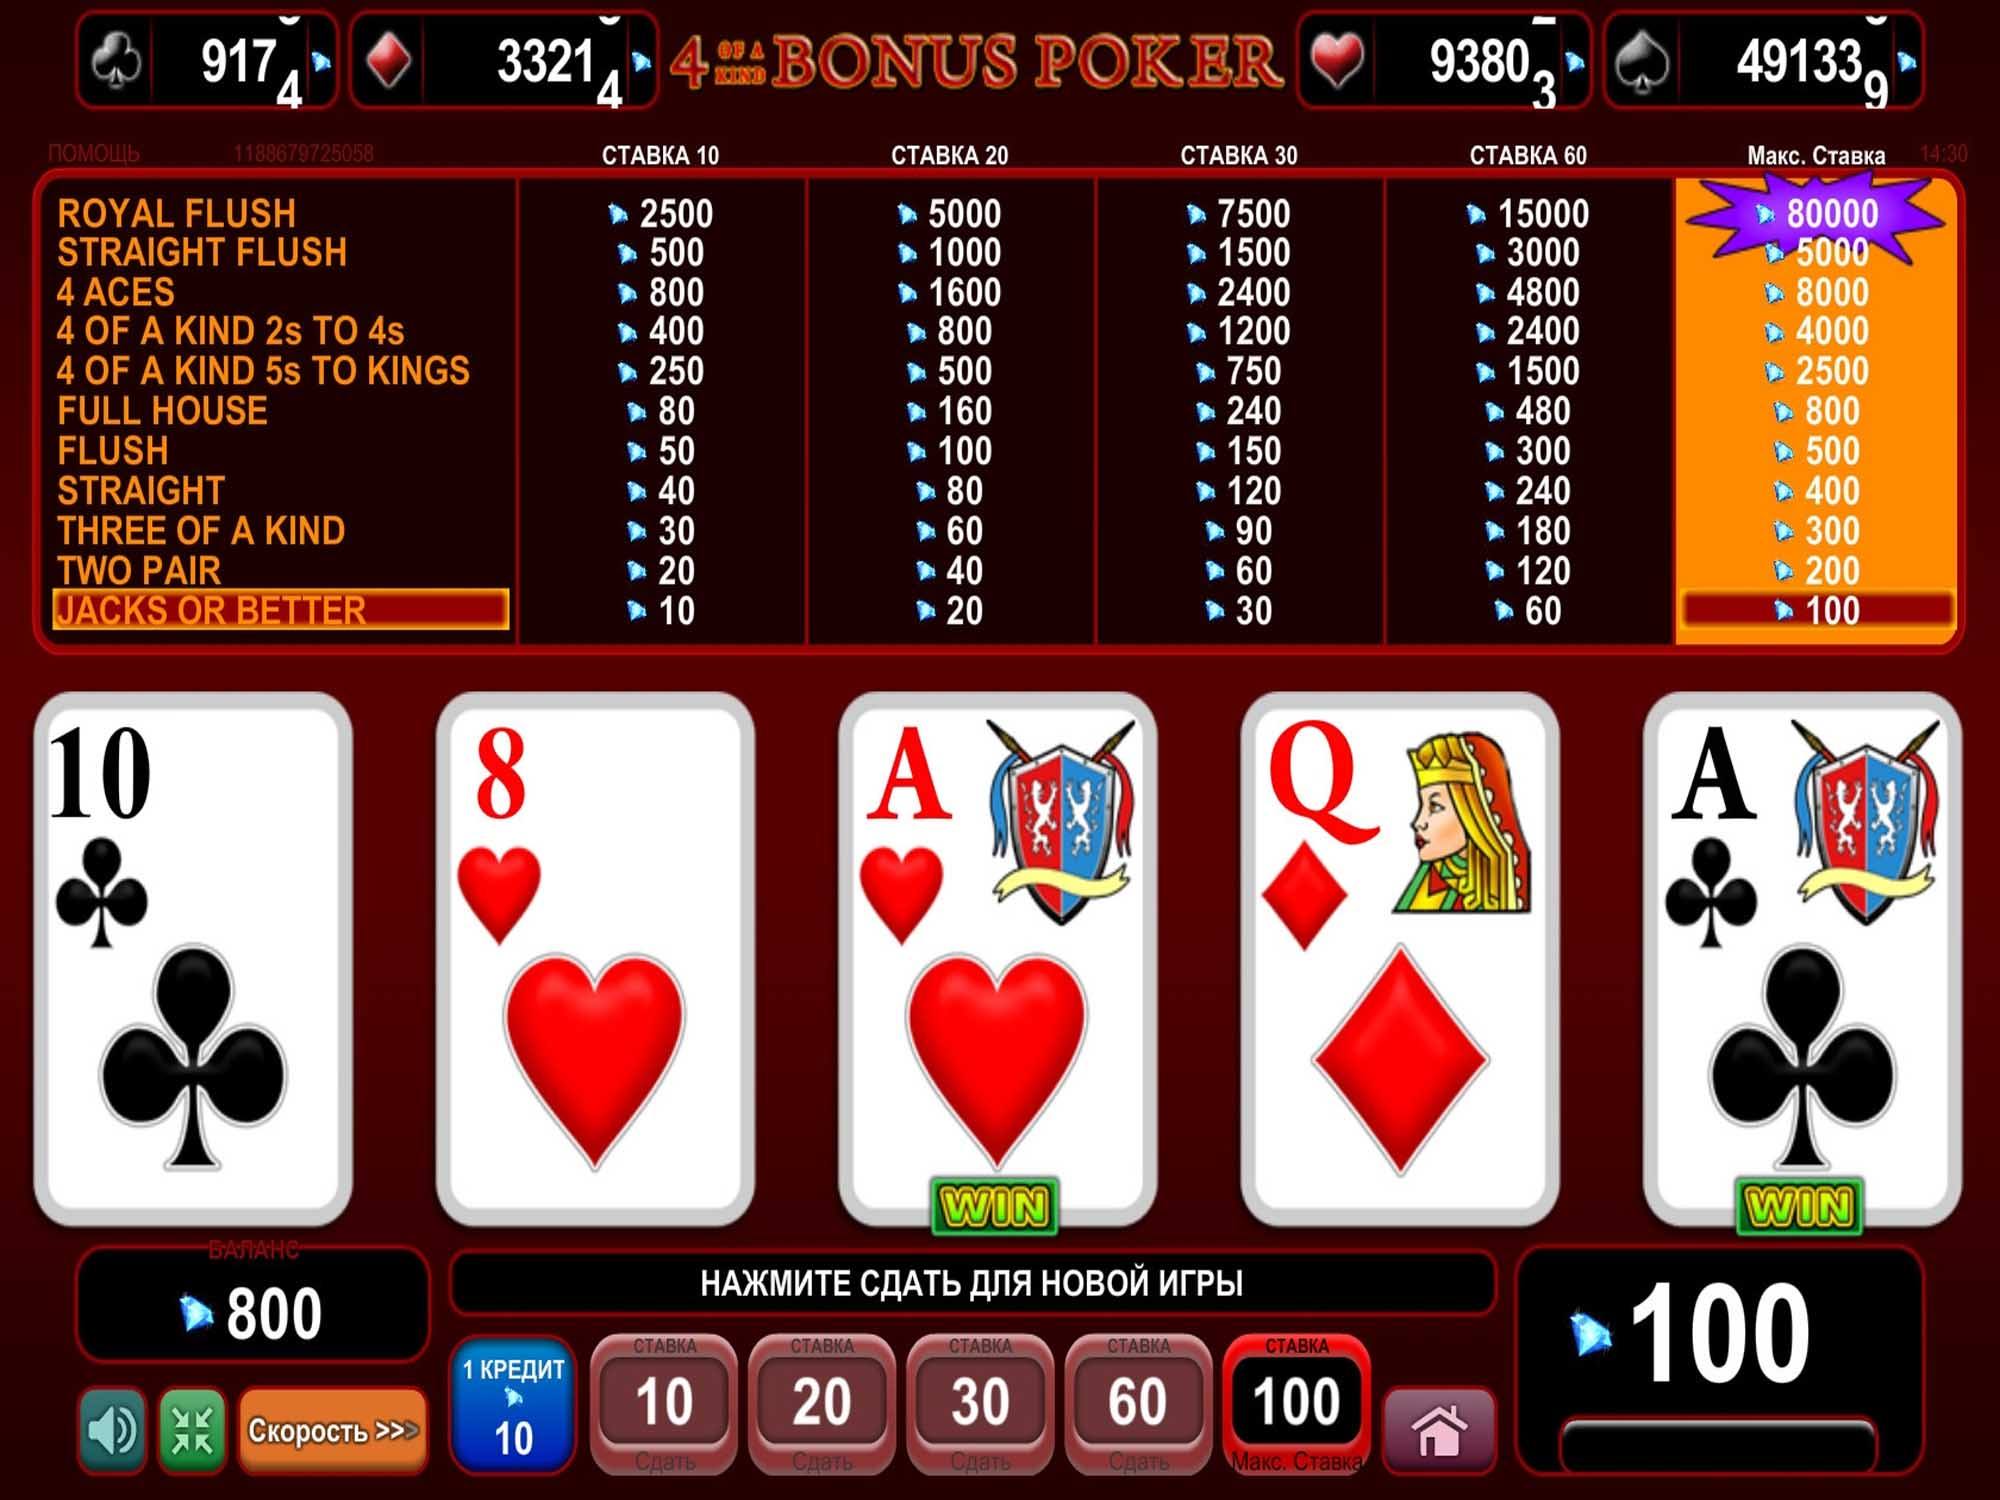 EGT 4 of a Kind Bonus Poker Video Poker screenshot